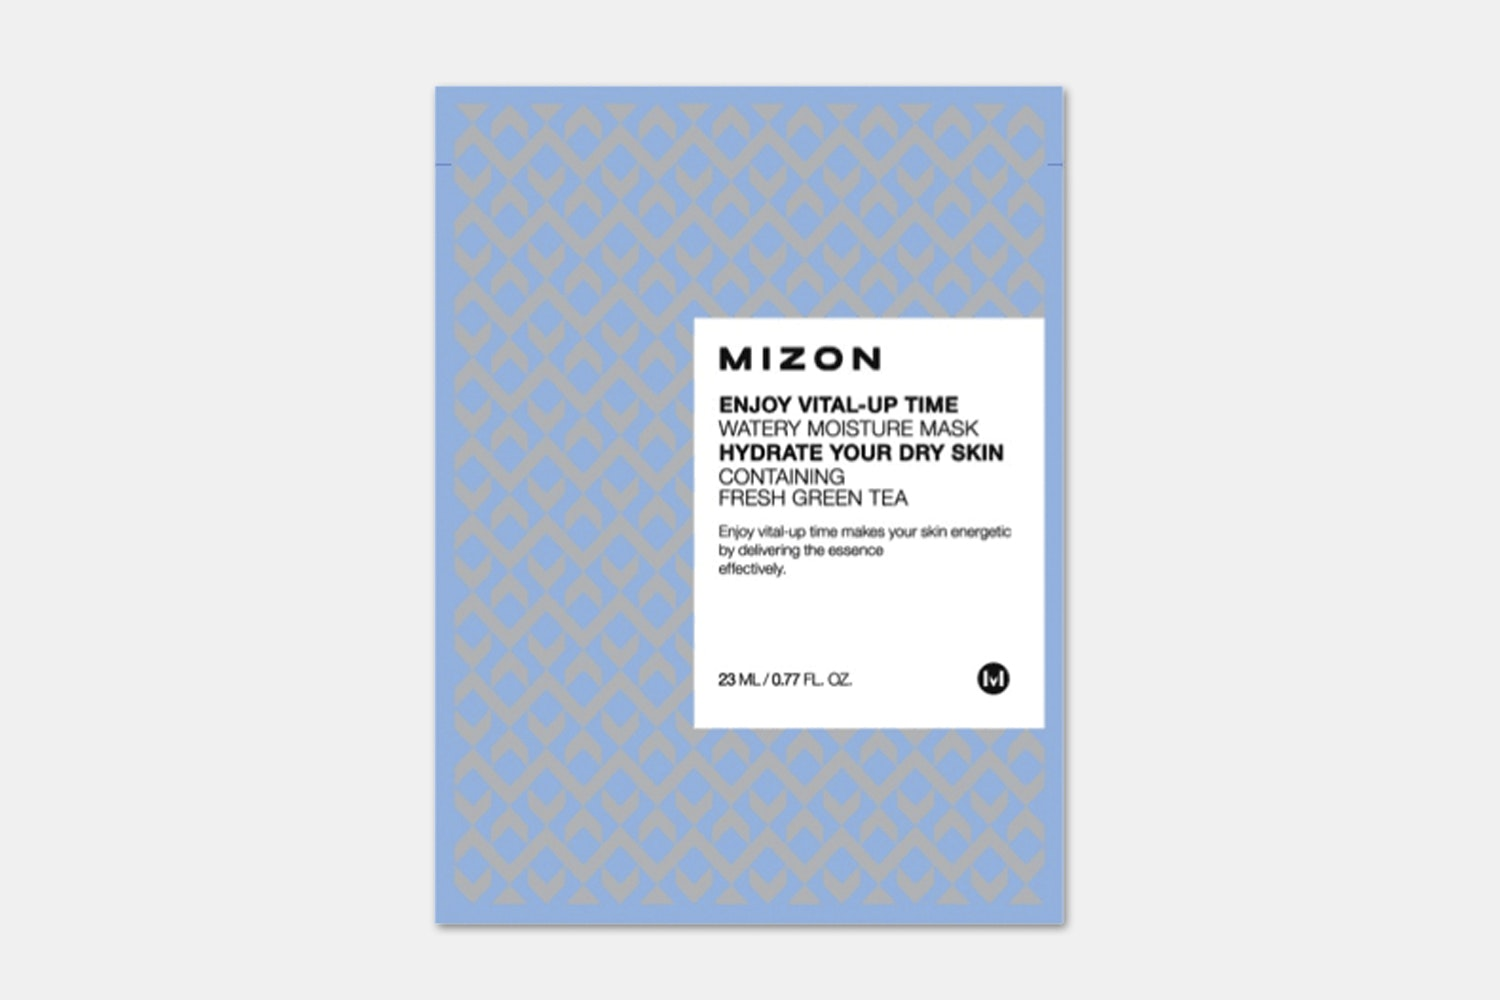 Mizon Enjoy Vital-Up Time Watery Moisture Mask